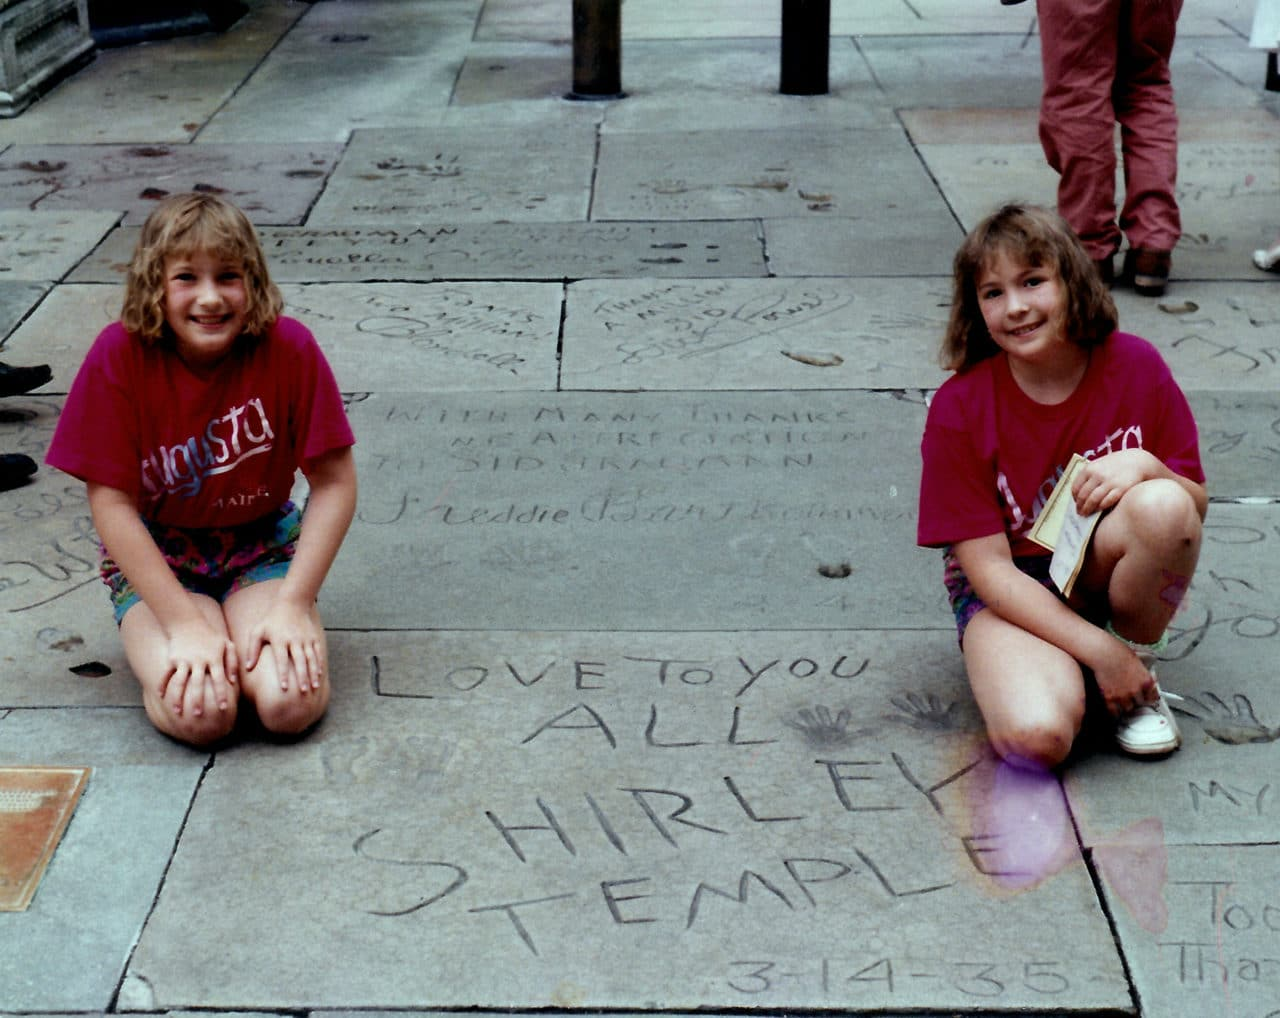 Autumn (left) and me, Amber (on right) at Grauman's Chinese Theatre posing next to Shirley Temple's handprints.